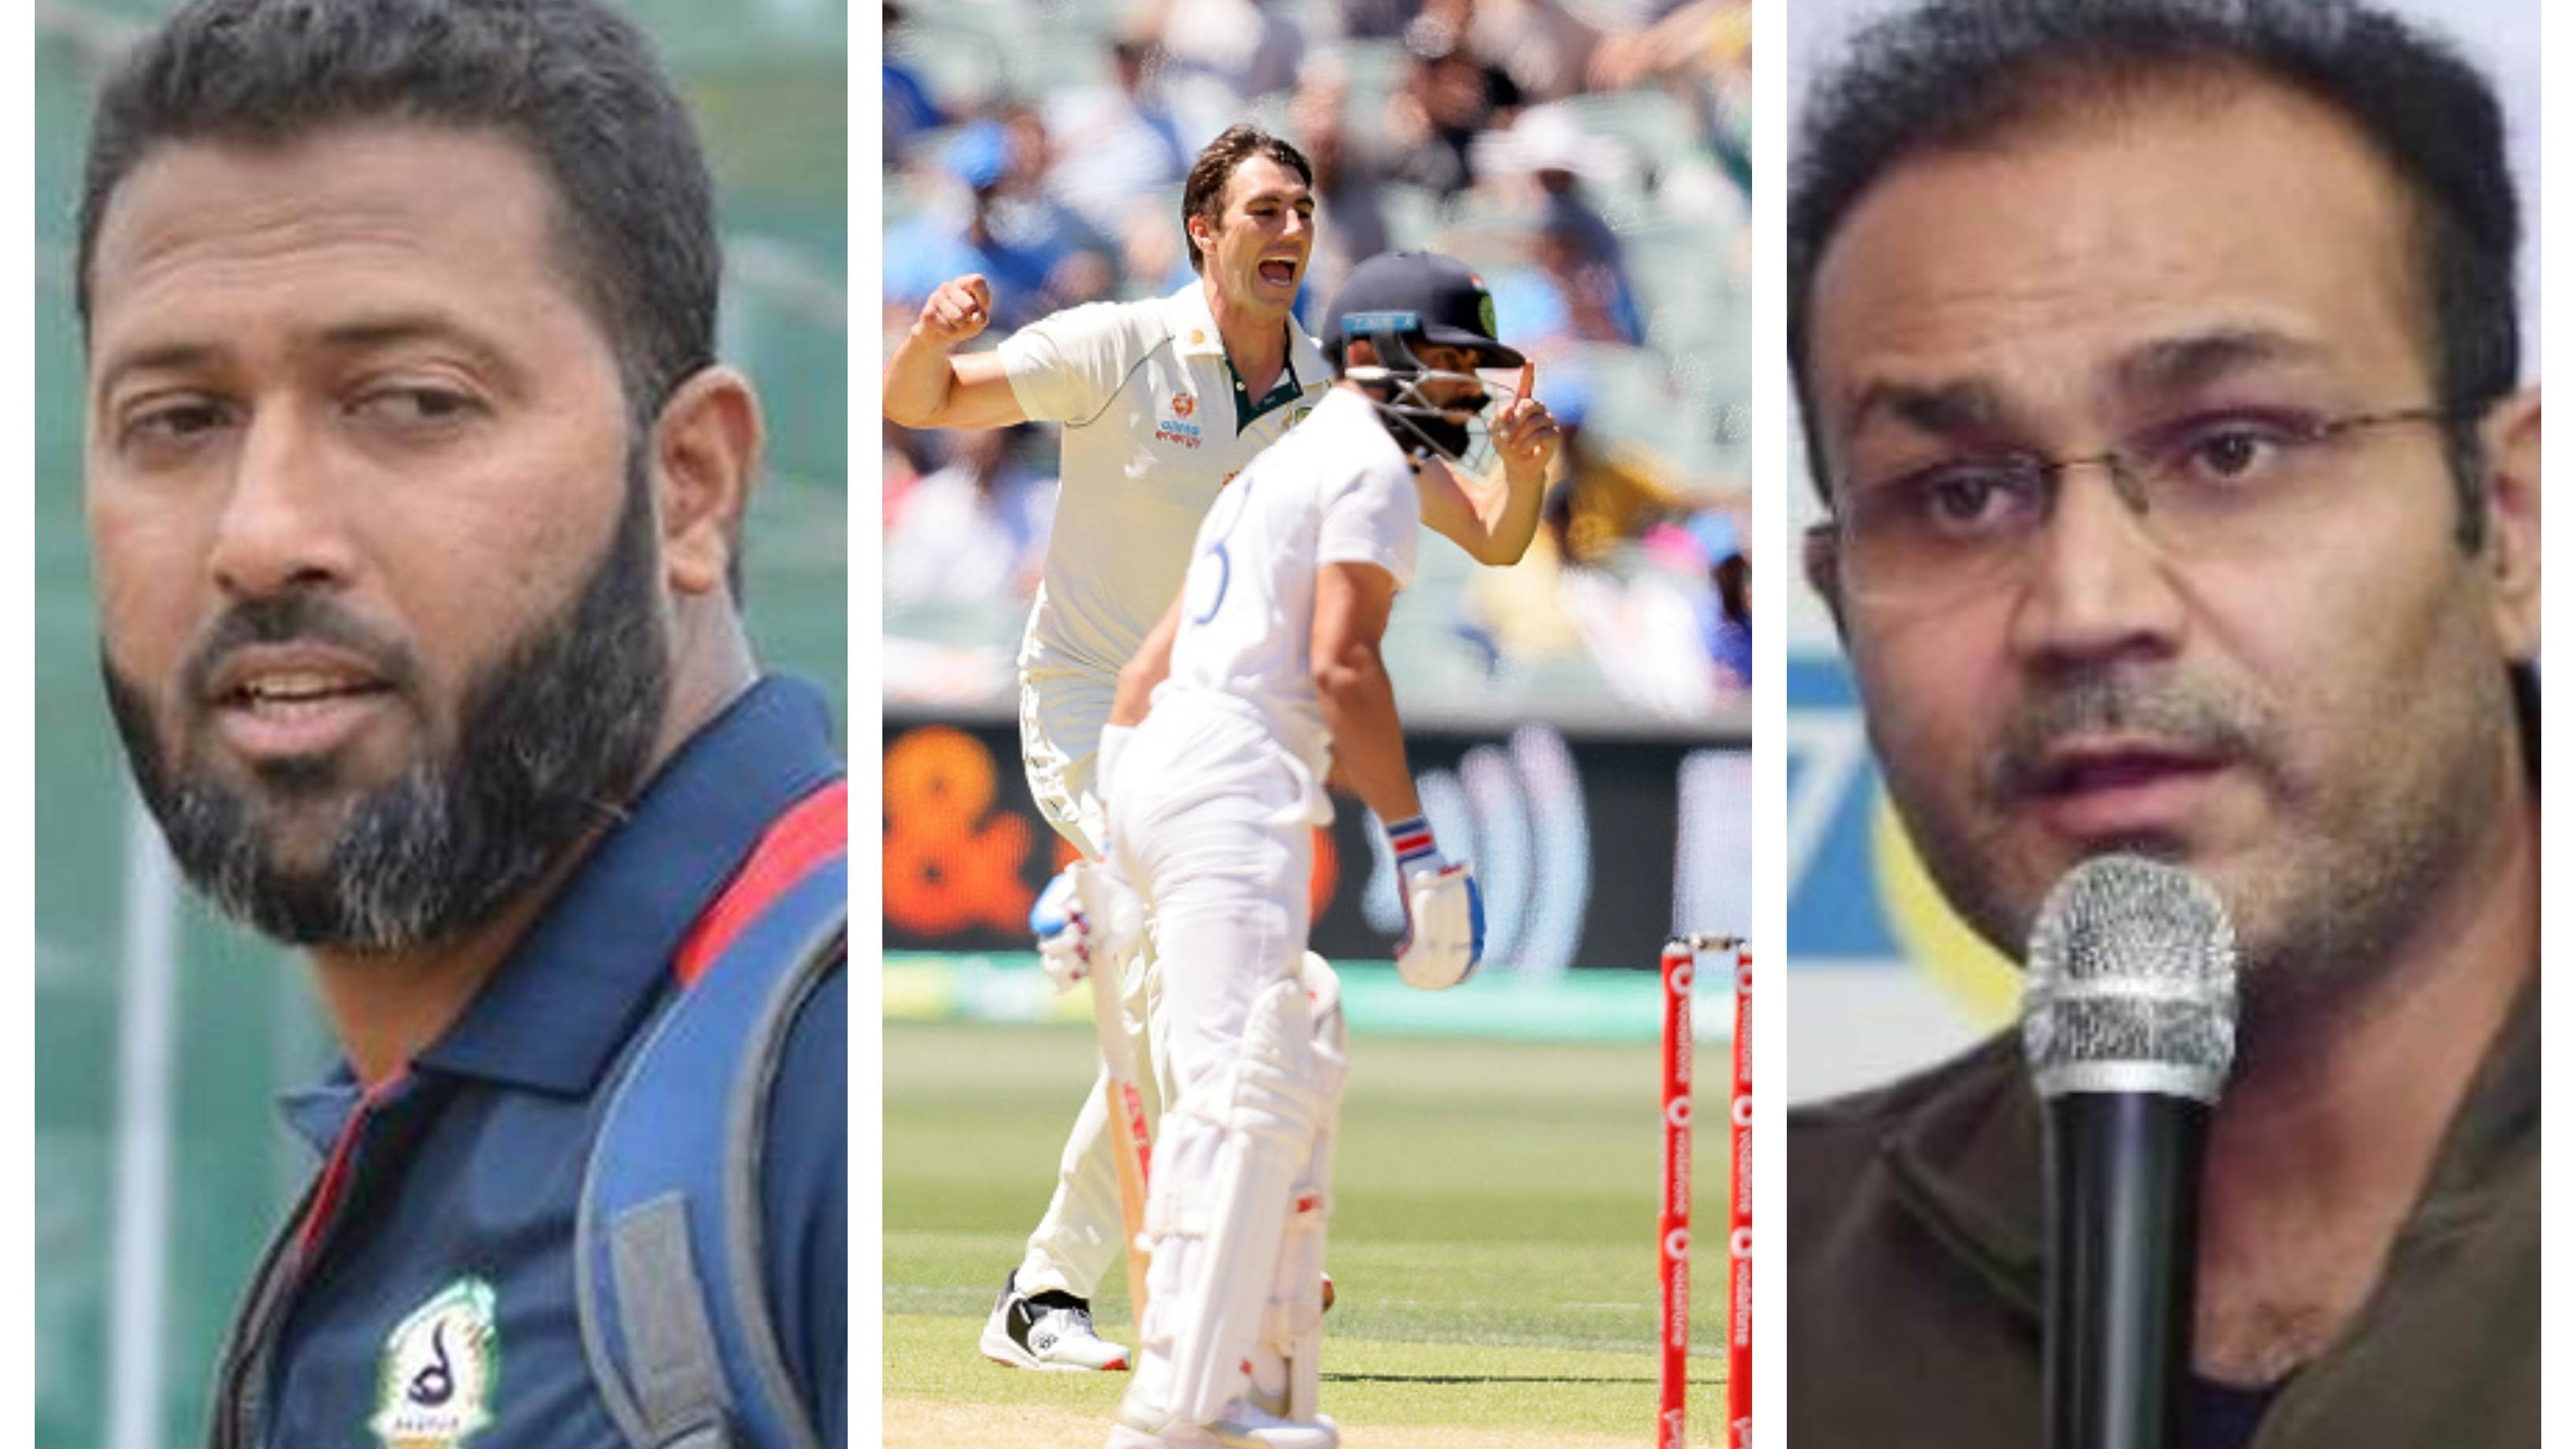 AUS v IND 2020-21: Cricket fraternity reacts as Australia dismiss India for a paltry 36 in 2nd innings at Adelaide